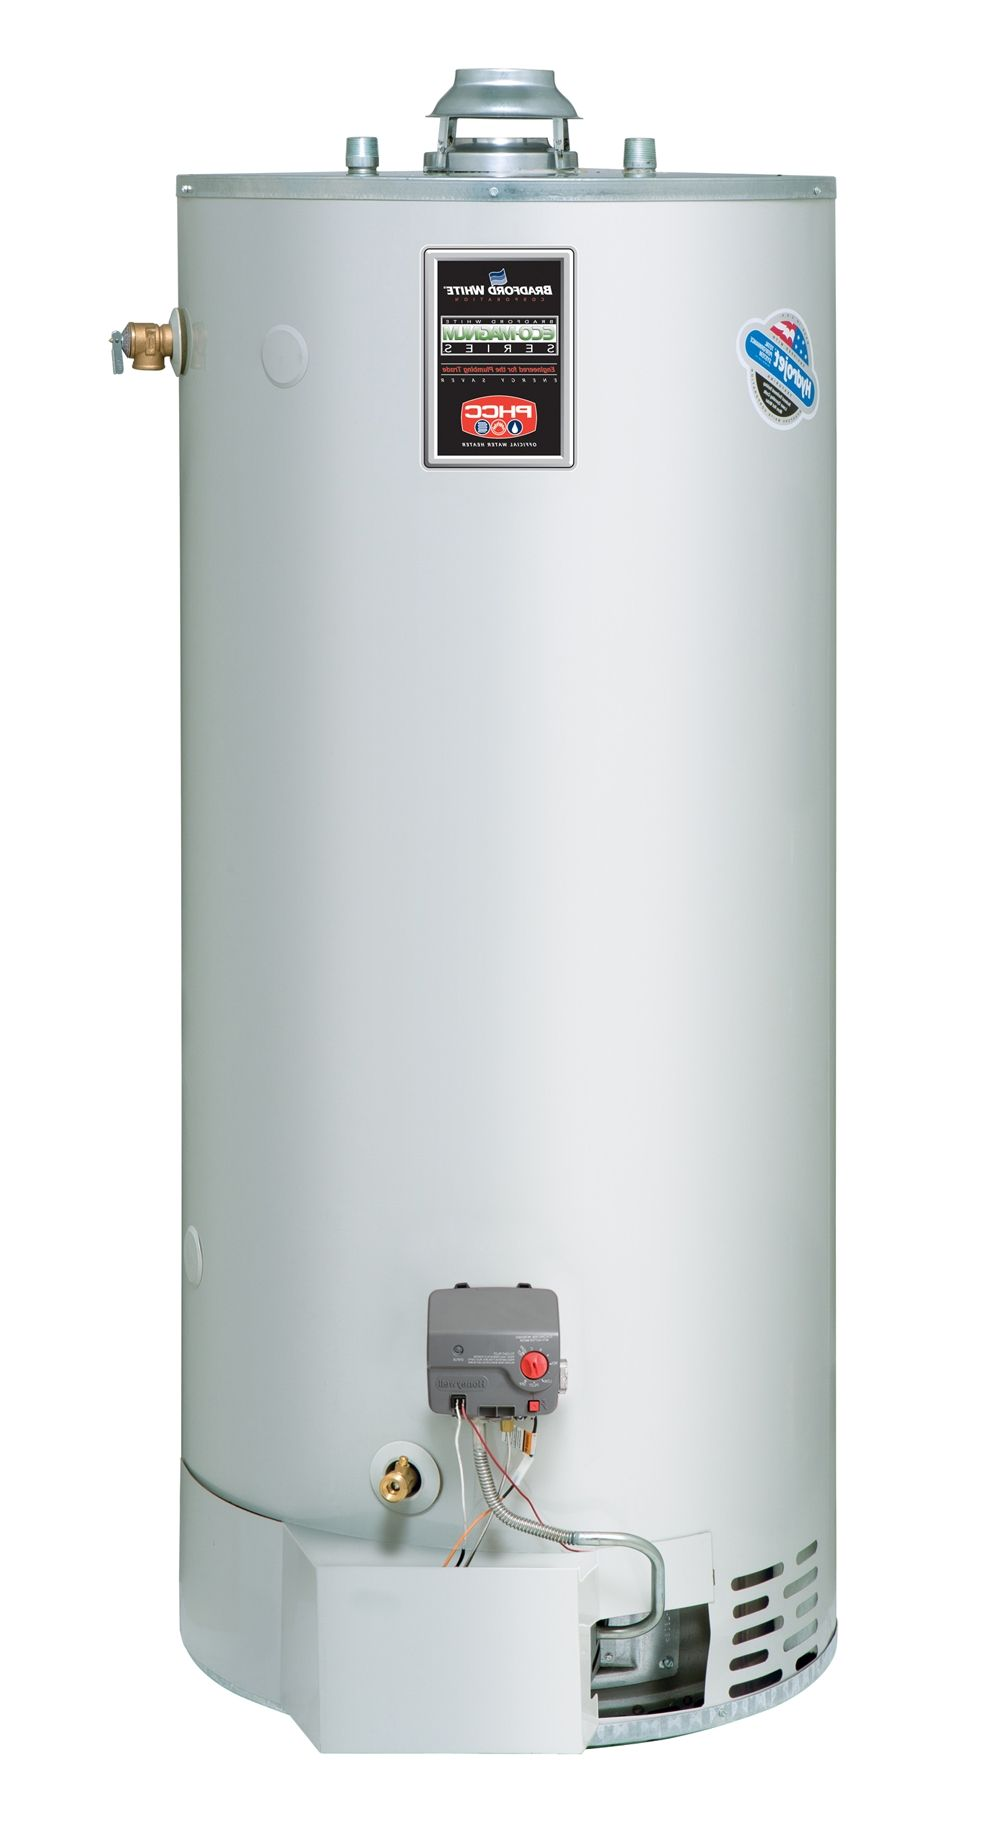 Sears Tankless Hot Water Heaters